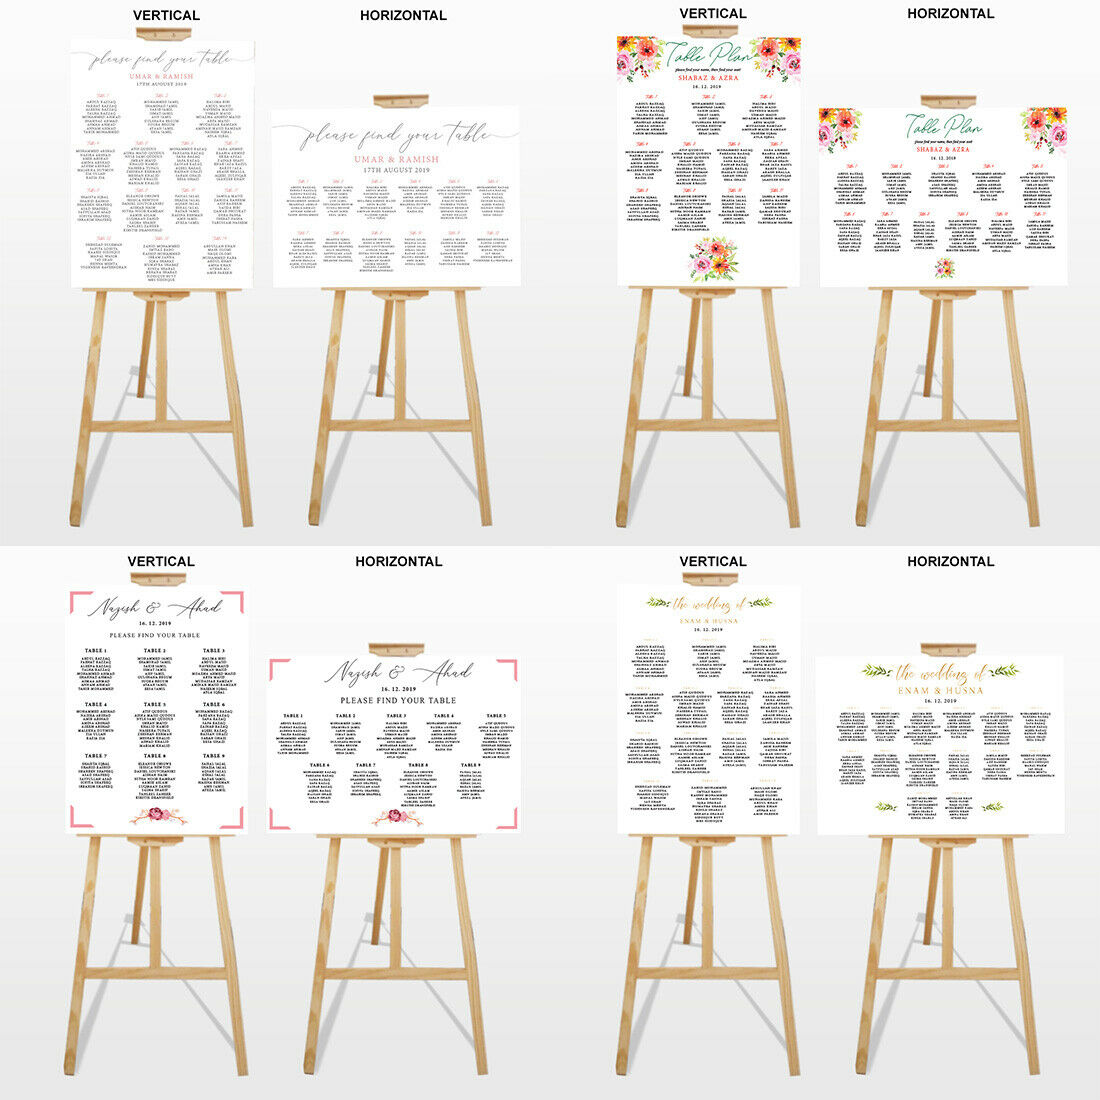 Personalised Names Table Plan Find Your Seat Wedding A1 Form Board Party Decor 5